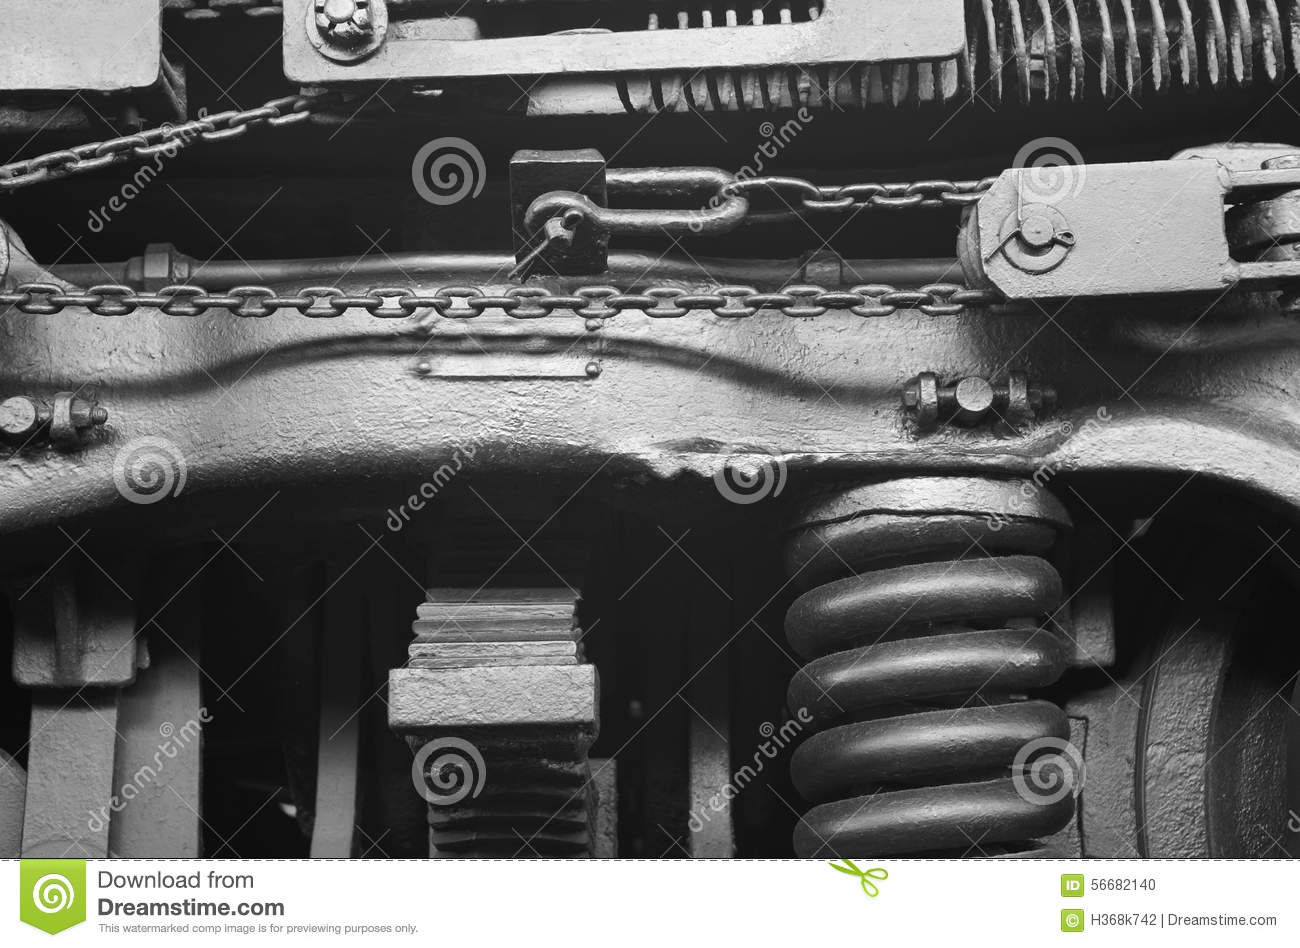 Steam locomotive machinery detail in black and white